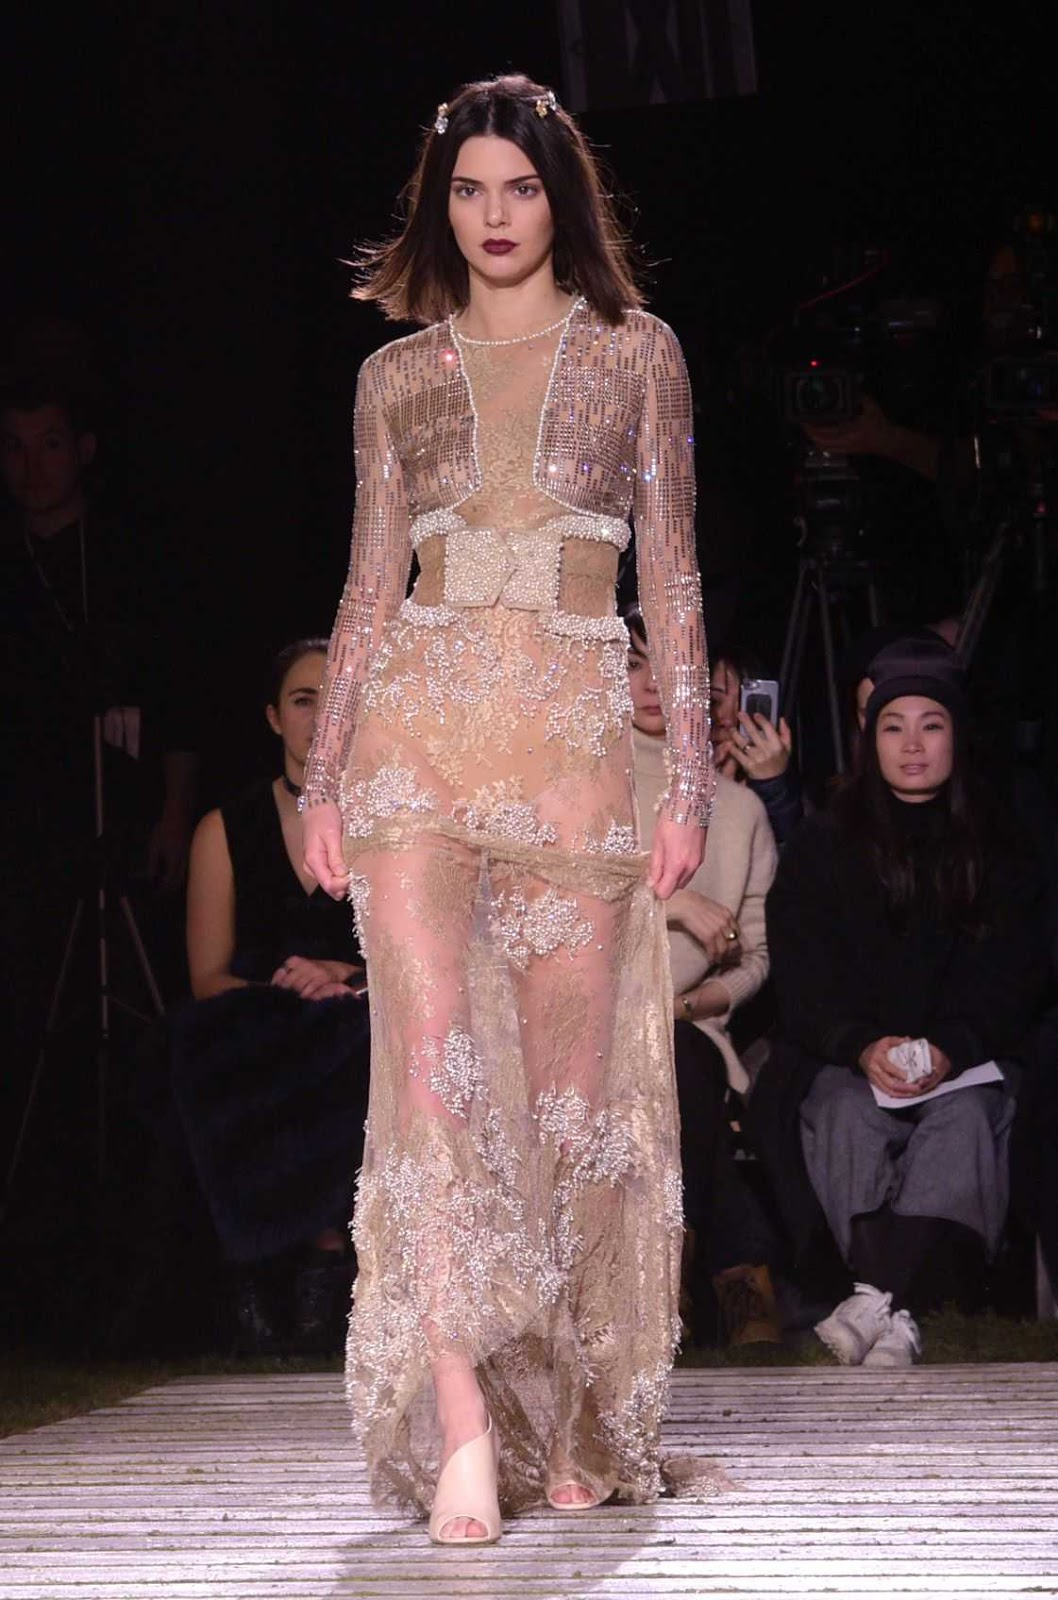 Kendall Jenner turns up the heat in see through gown at the La Perla NYFW Show